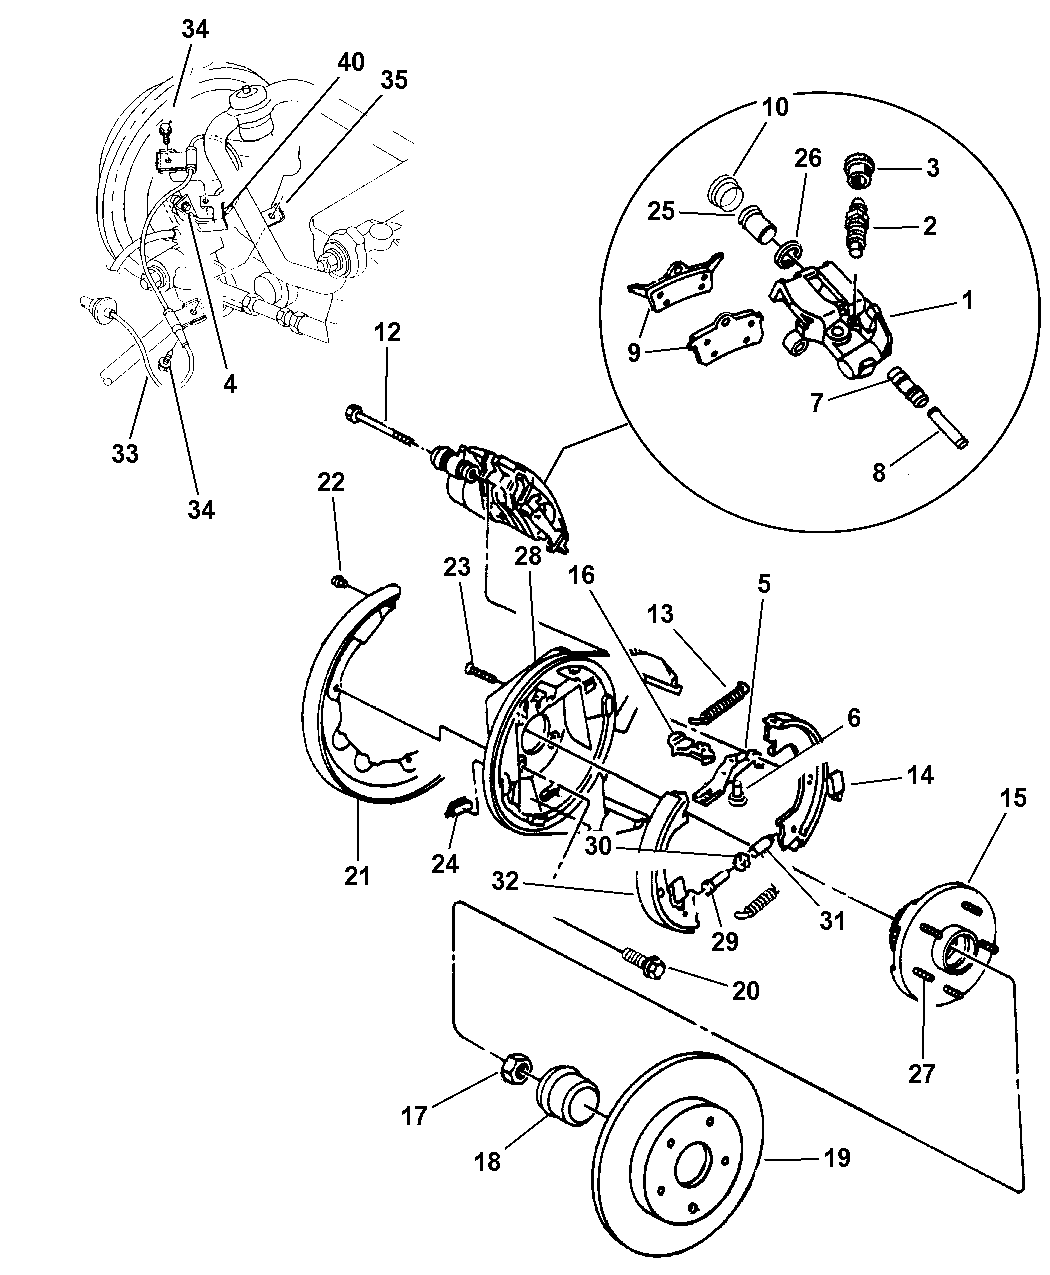 1997 Chrysler Sebring Convertible Brakes, Rear Disc